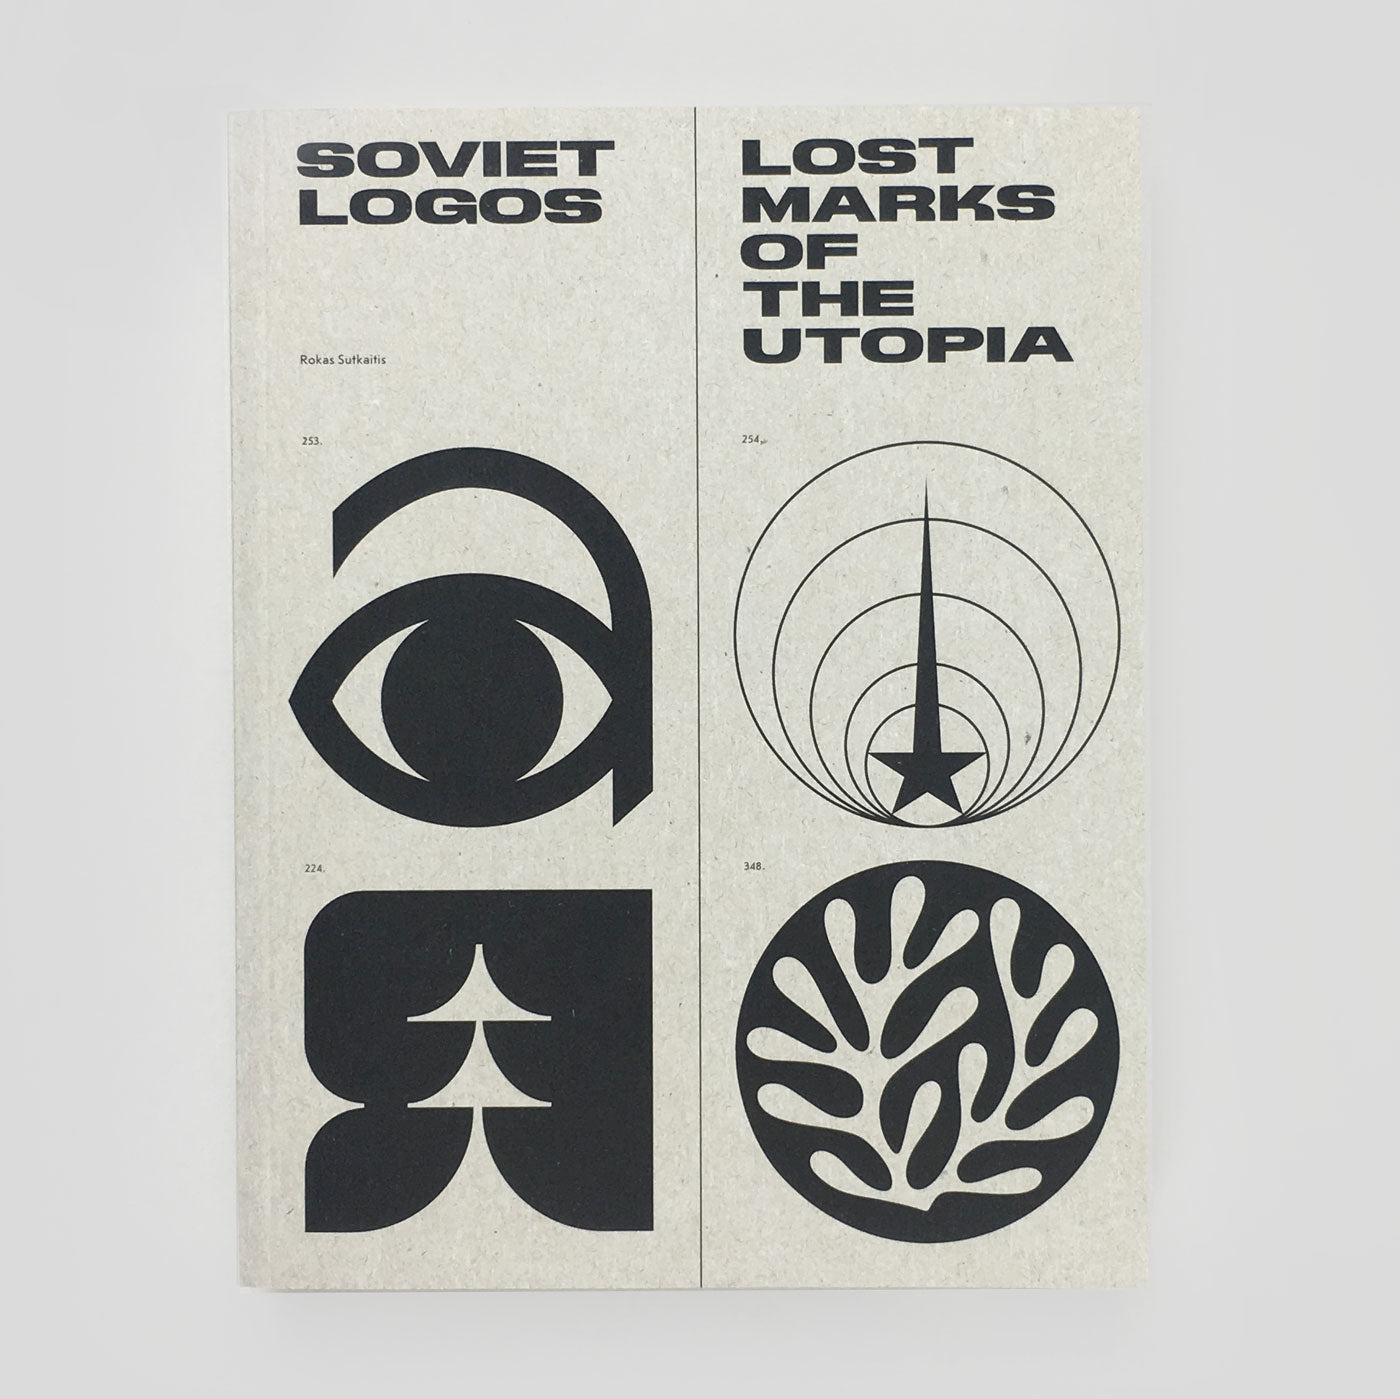 Soviet Logos - Lost Marks Of The Utopia by Rokas Sutkaitis